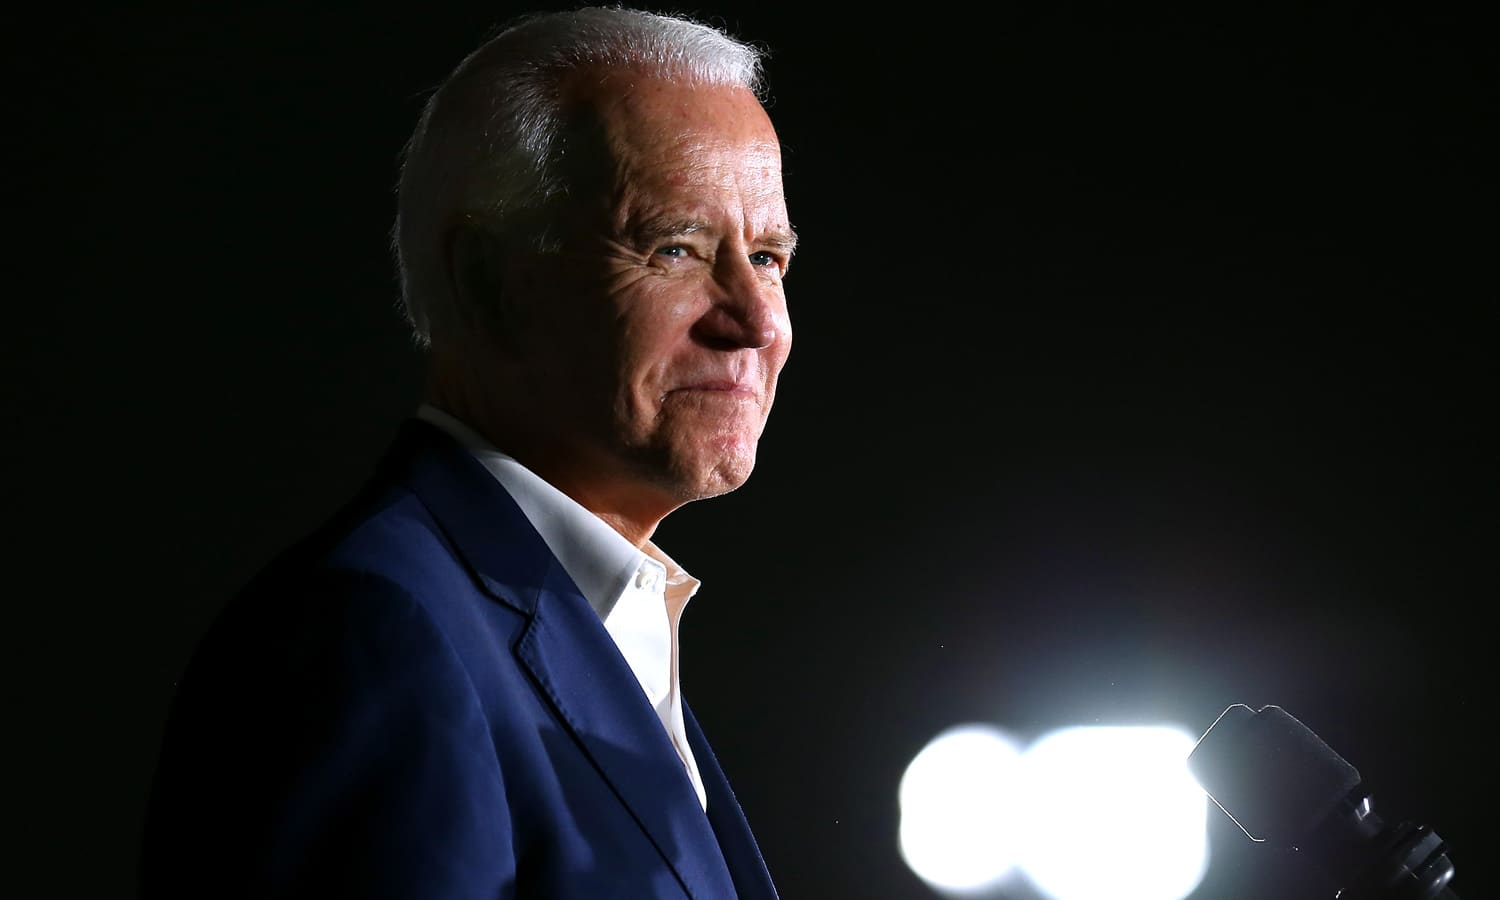 Joe Biden Keeps Stating Conflicting Opinions About Marijuana